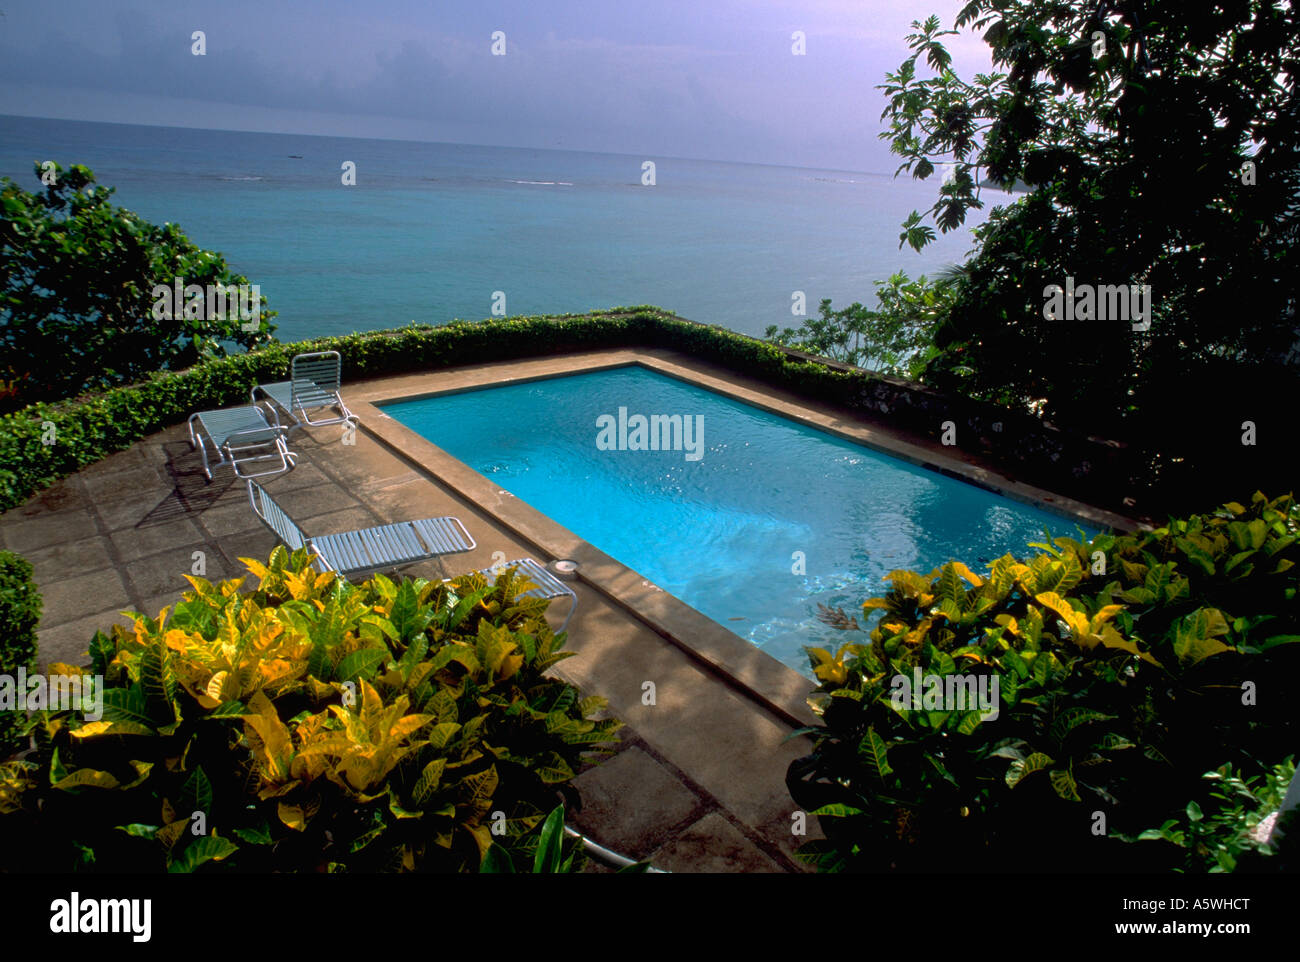 Painet Hk2245 Resort Swimming Pool Ocho Rios Calm Hotel Overlook Patio  Lawnchairs Lounge Chairs Blue Tile Ocean Vacation